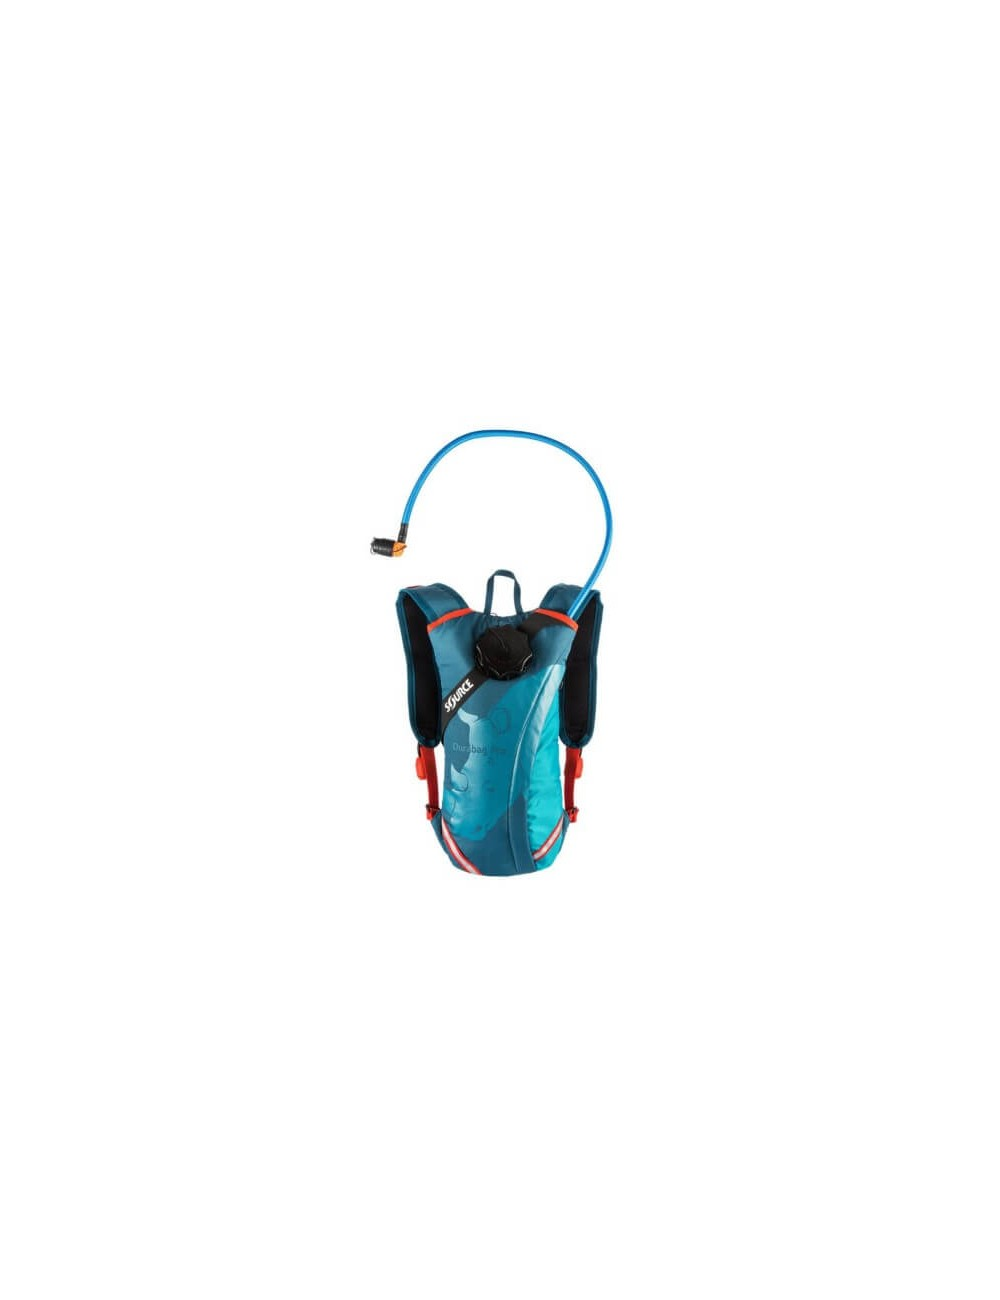 Source hydration pack Durabag Pro 3 liter - Coral Blue - Blauw